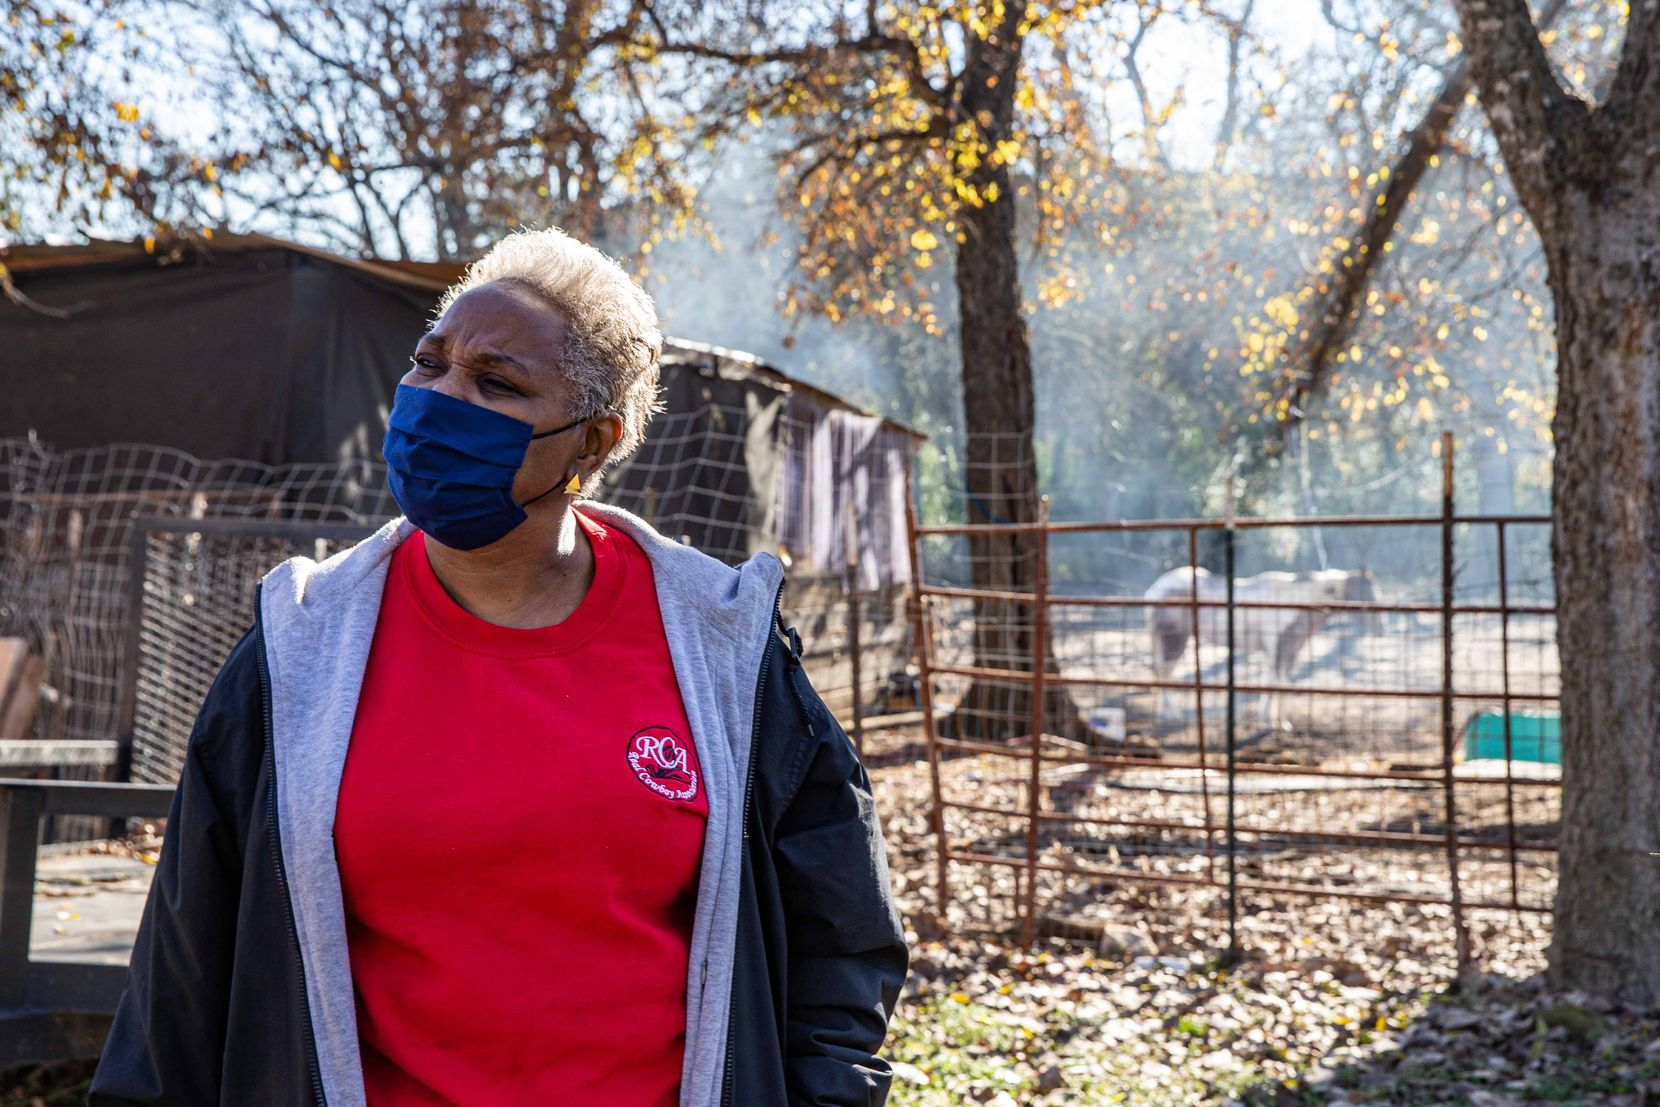 """All of us are glad that they're finally moving it, but we can't be overjoyed and happy until it's completely gone and the property is completely cleaned,"" says Marsha Jackson, 62, who has lived in her brick ranch-style home on Choate Road for 25 years. ""We've suffered for so long. And we're still suffering."""